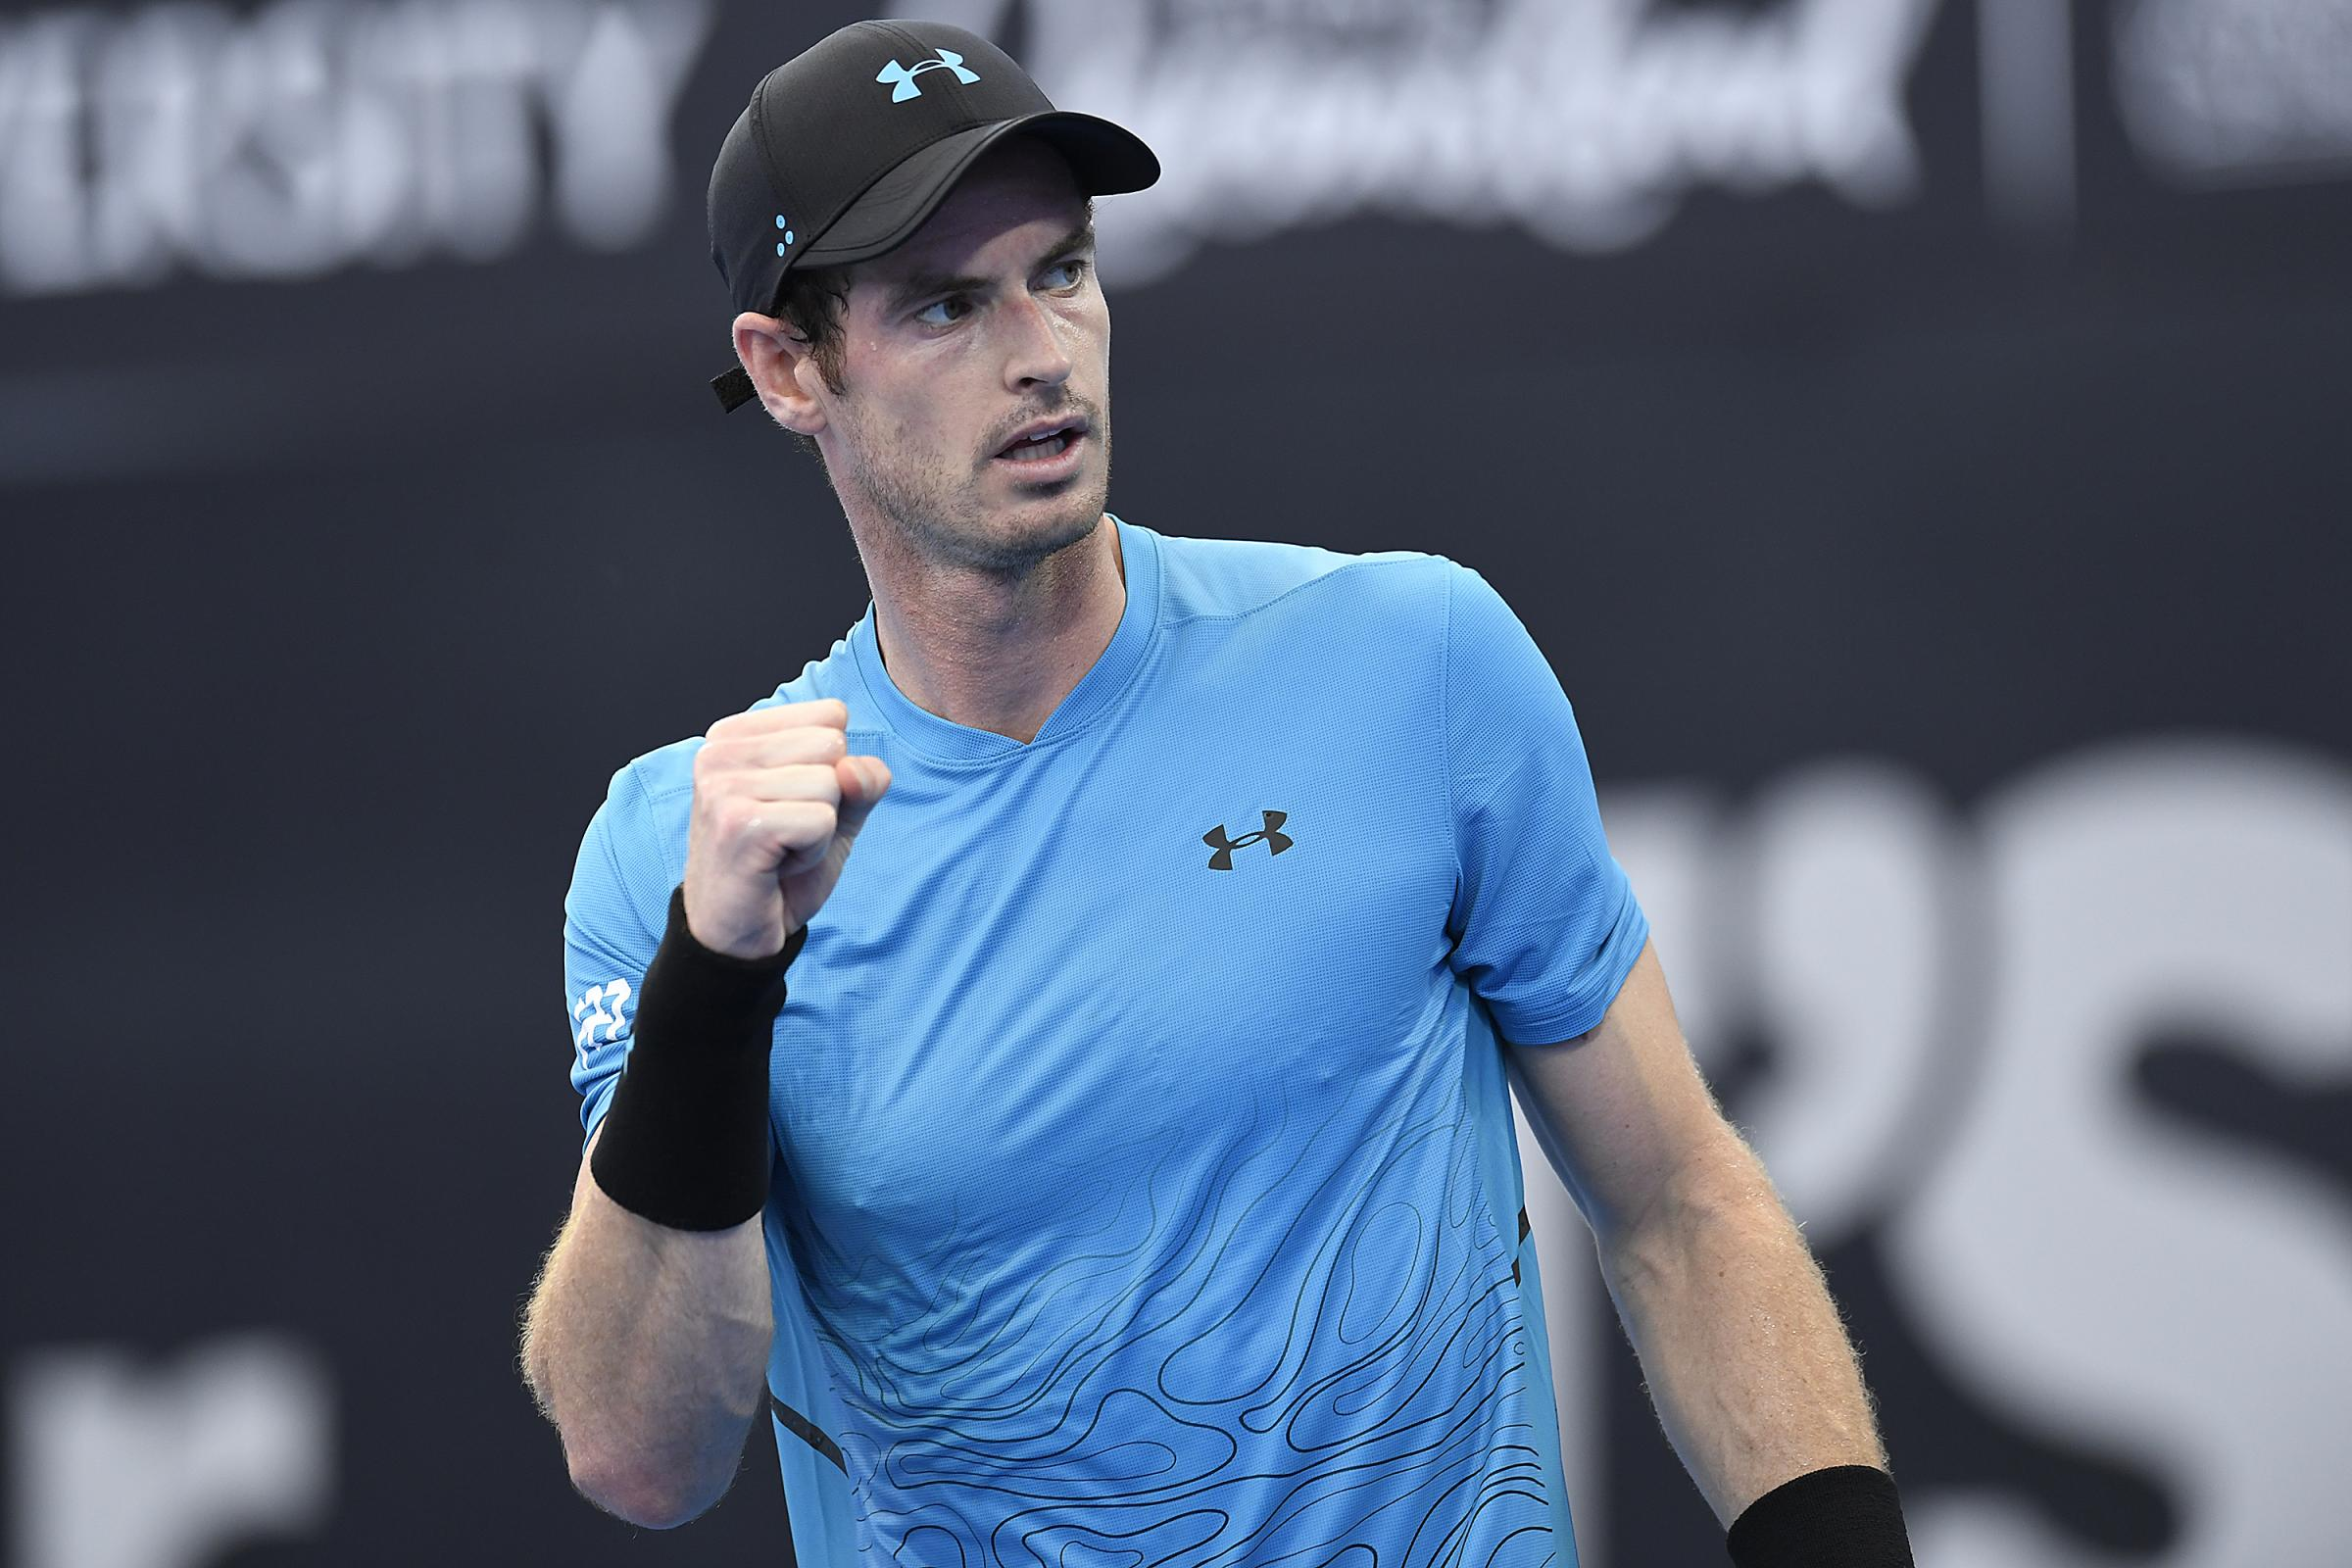 Andy Murray was in action in the Brisbane International on Tuesday